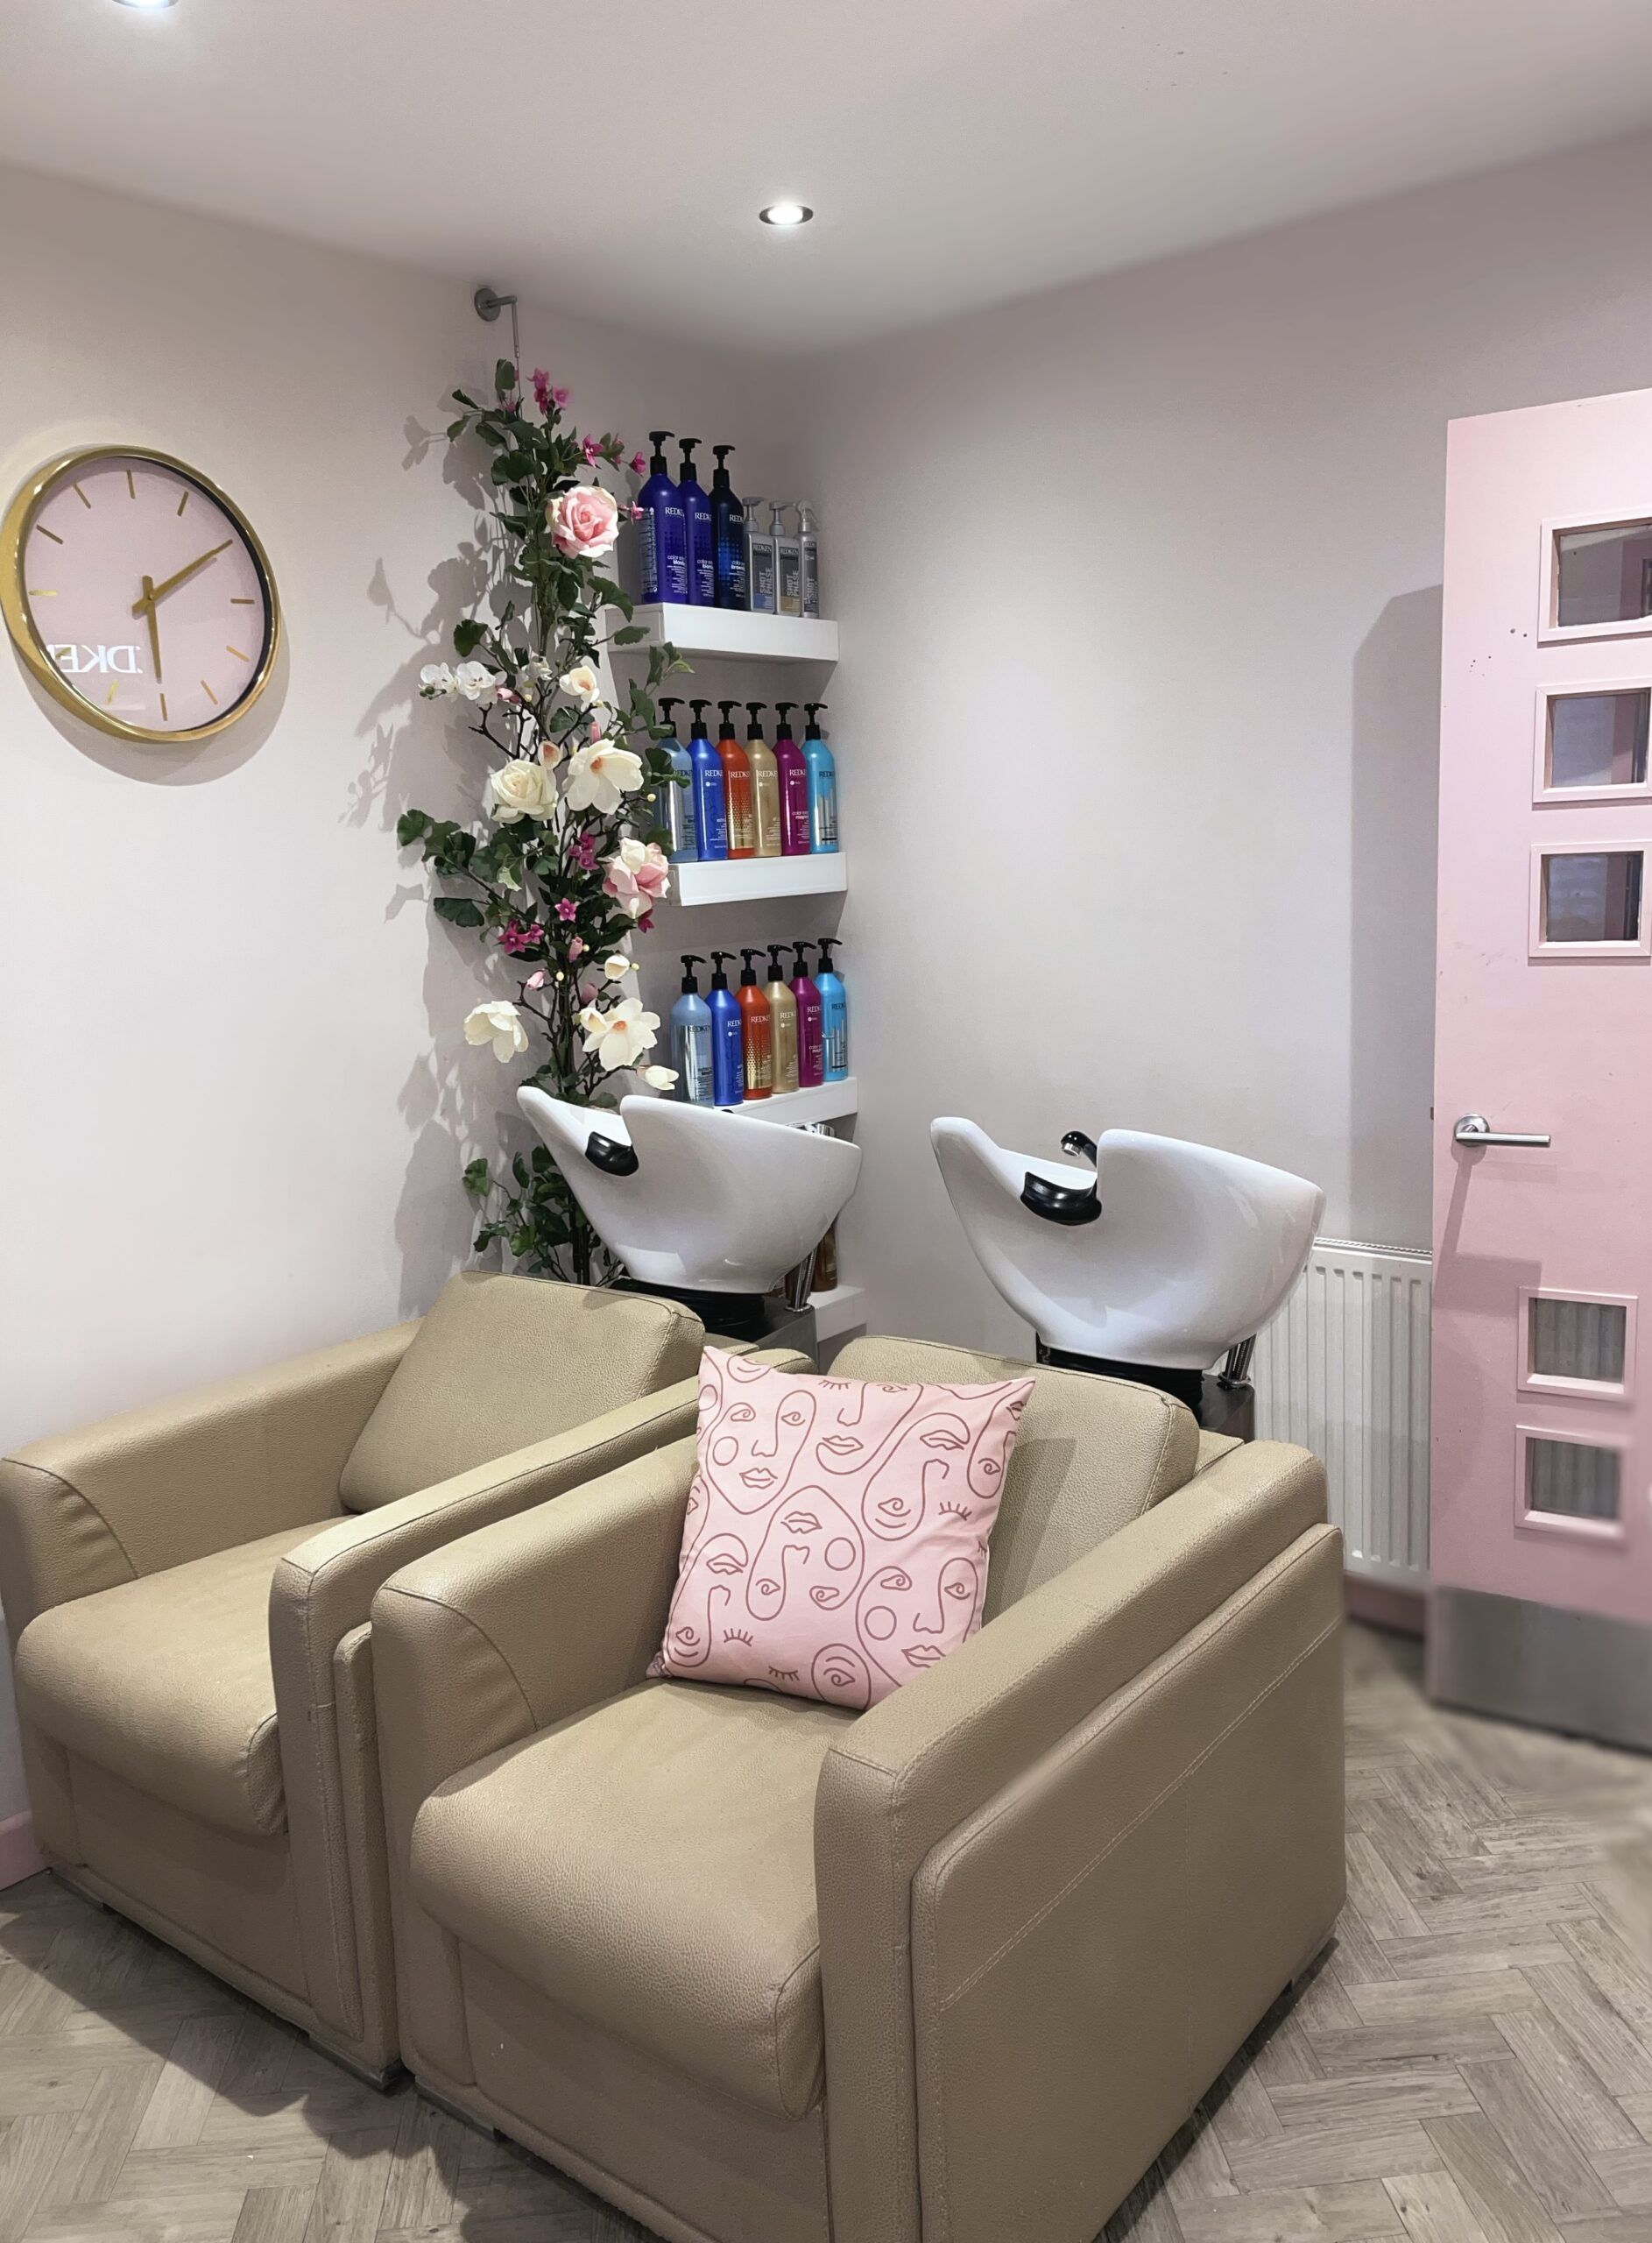 Wild Salon uses Lotus Murray backwashes exclusively available from Salons Direct